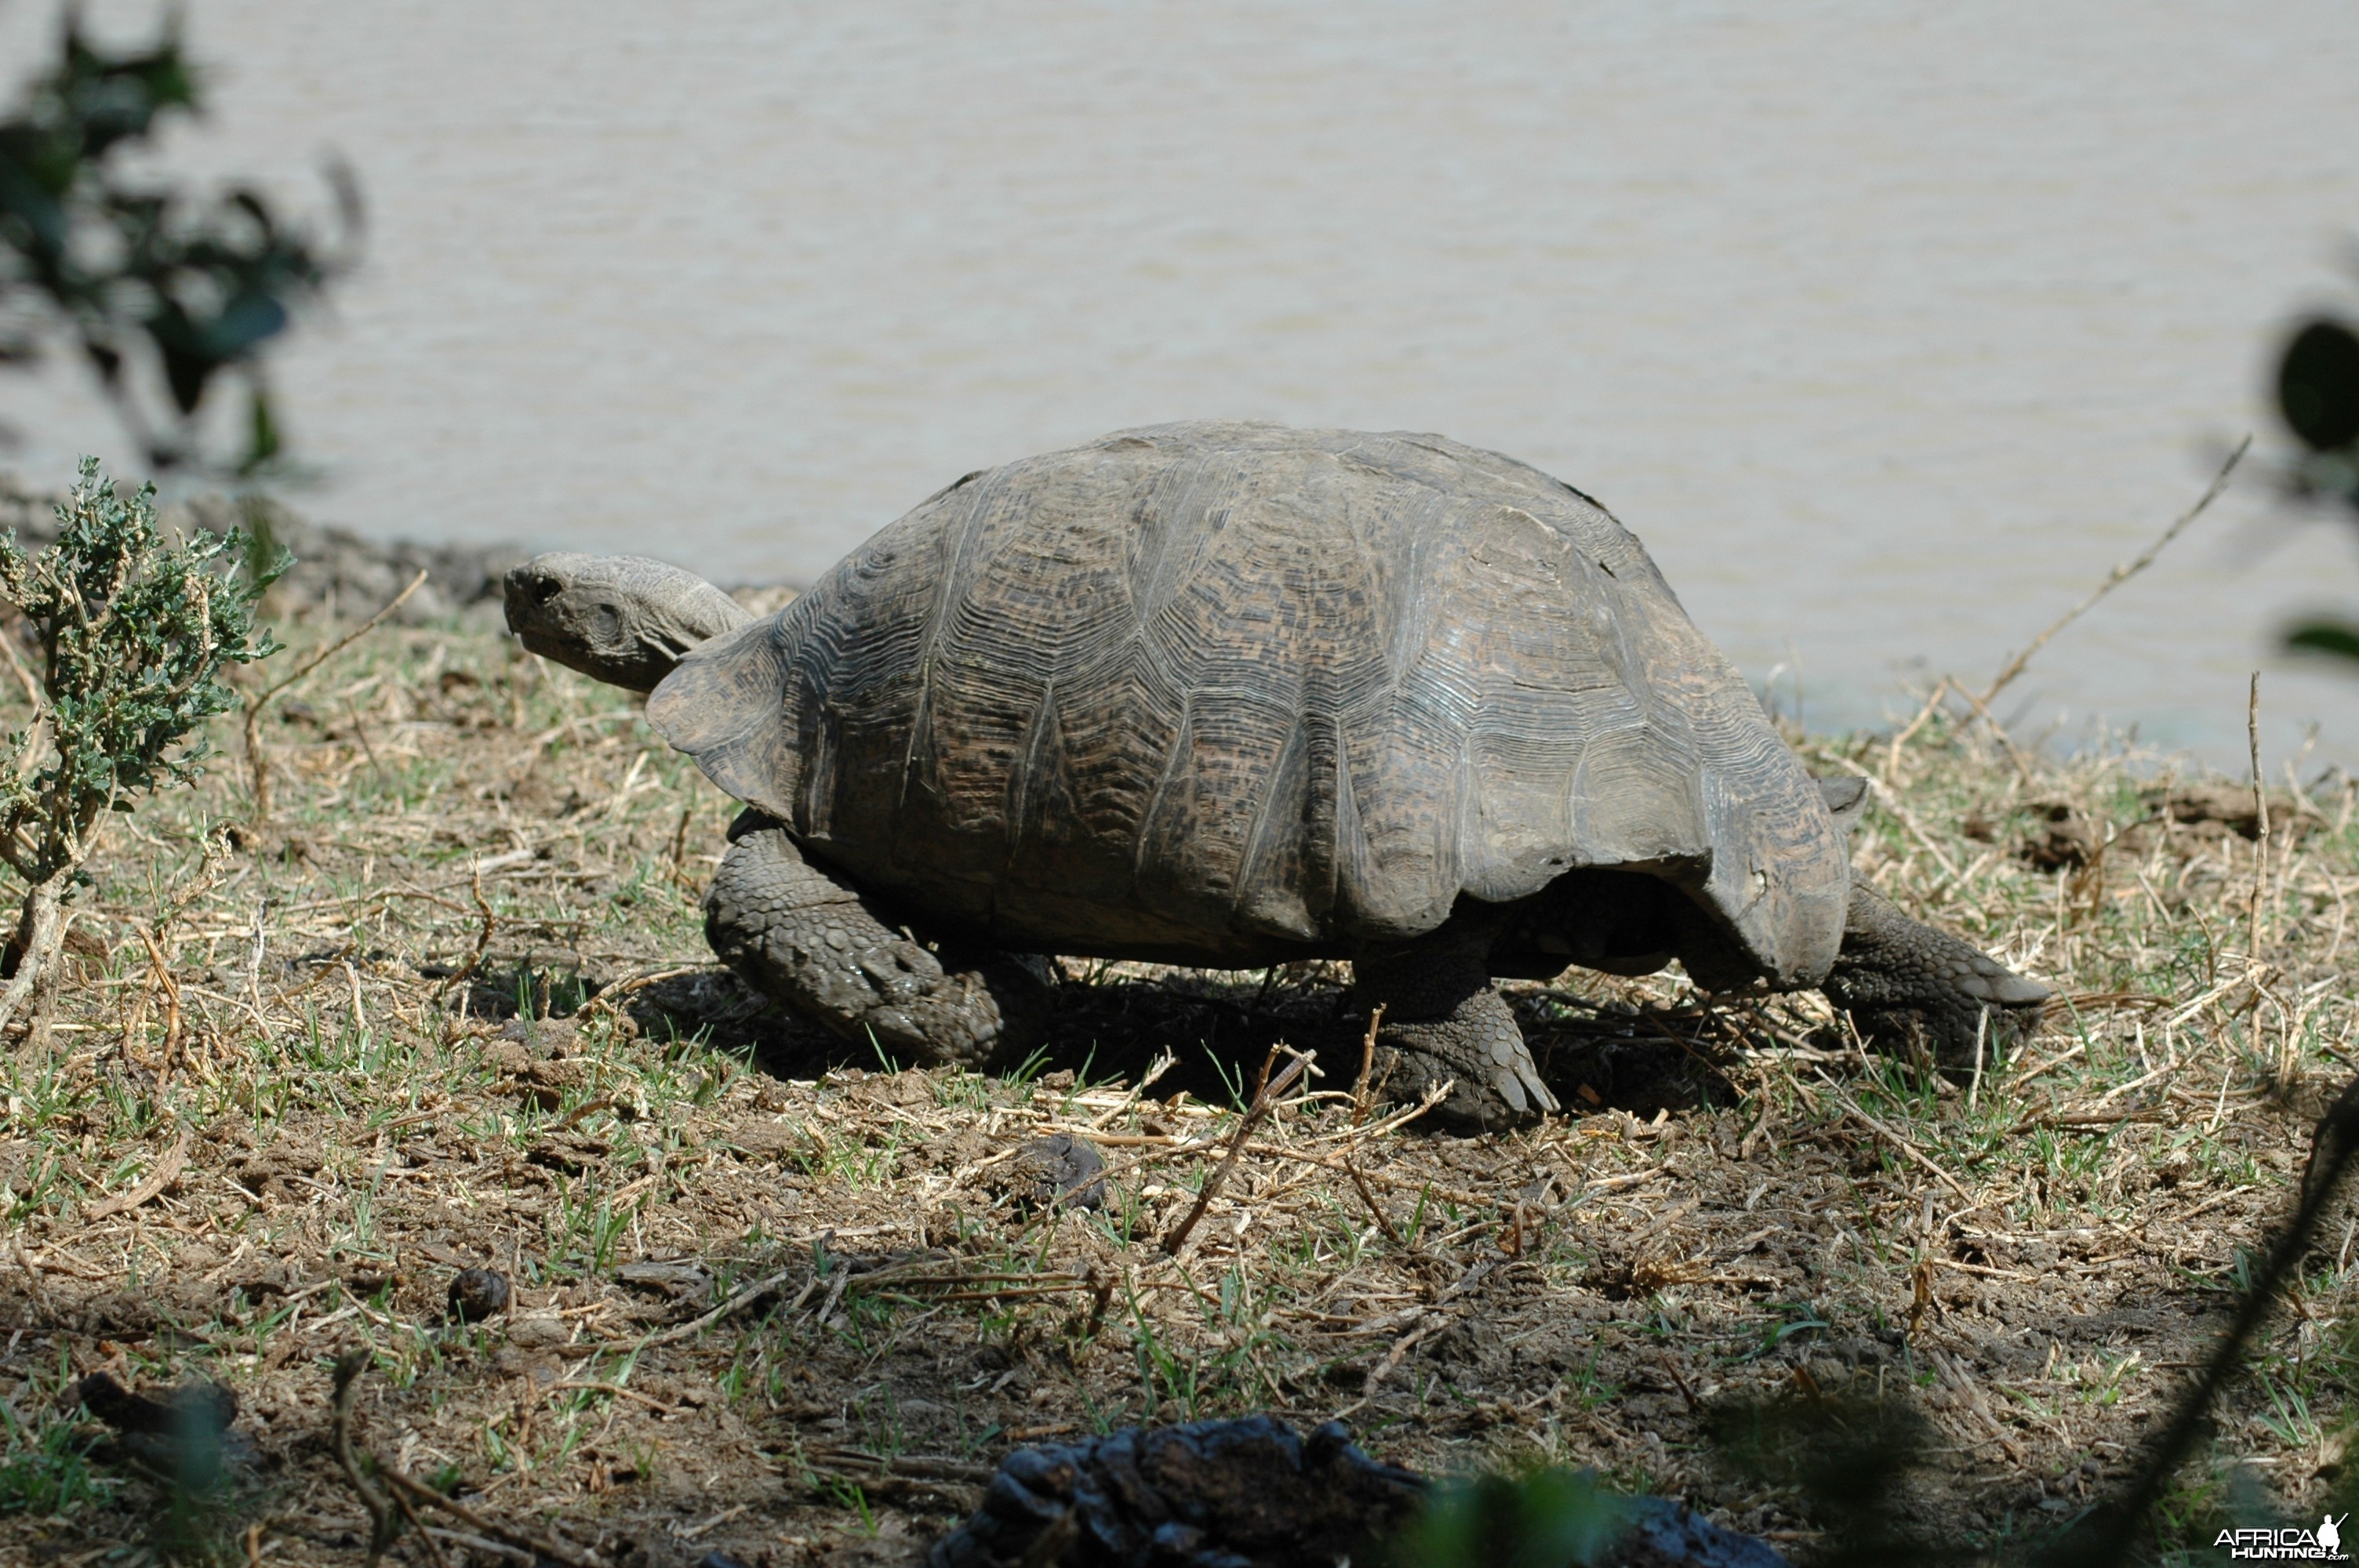 Tortise by pond, Eastern Cape, South Africa